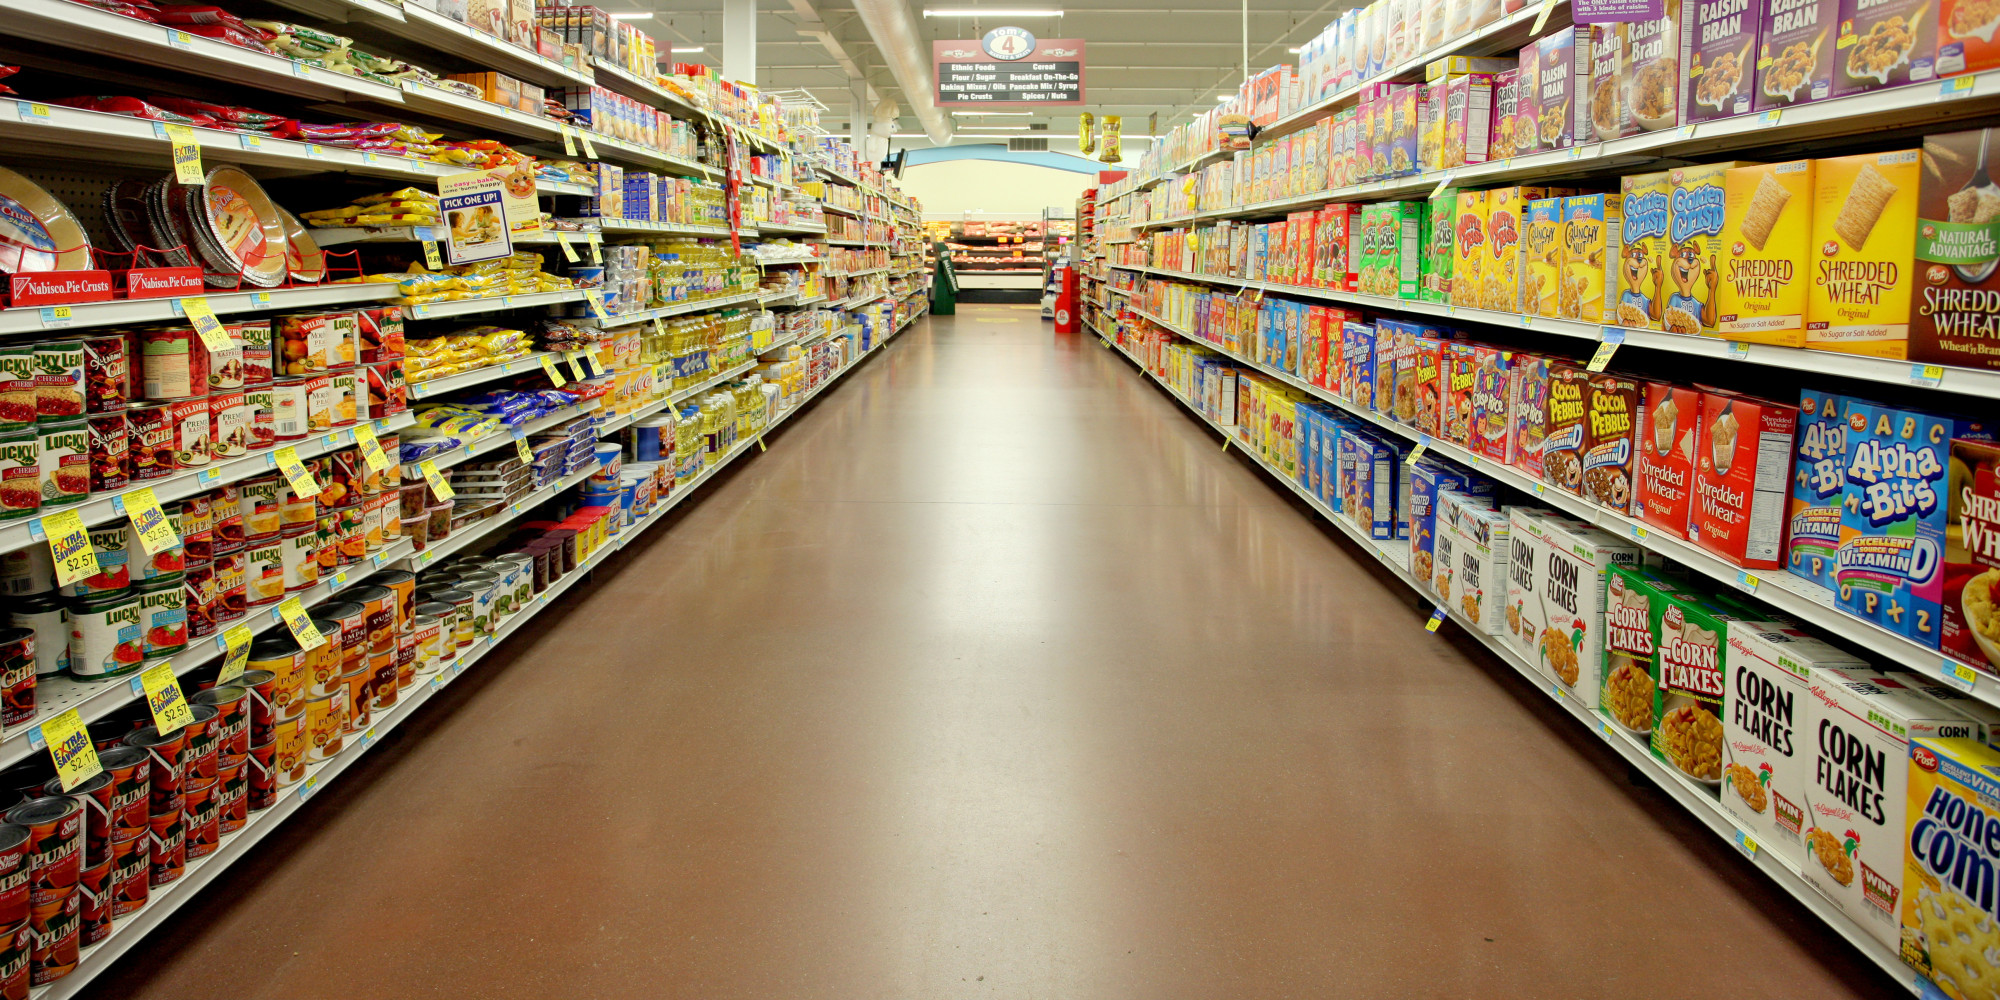 8 Foods You Should NEVER Buy From the Store